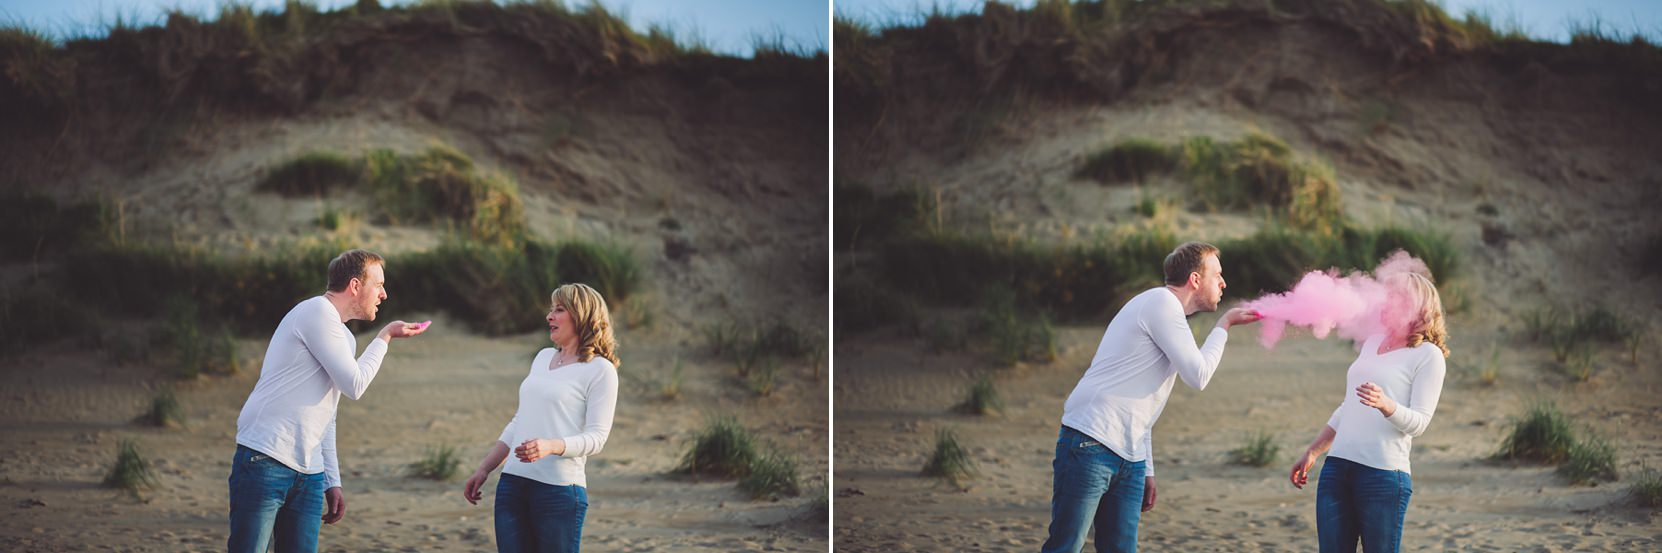 Engagement-Beach-Shoot_0018